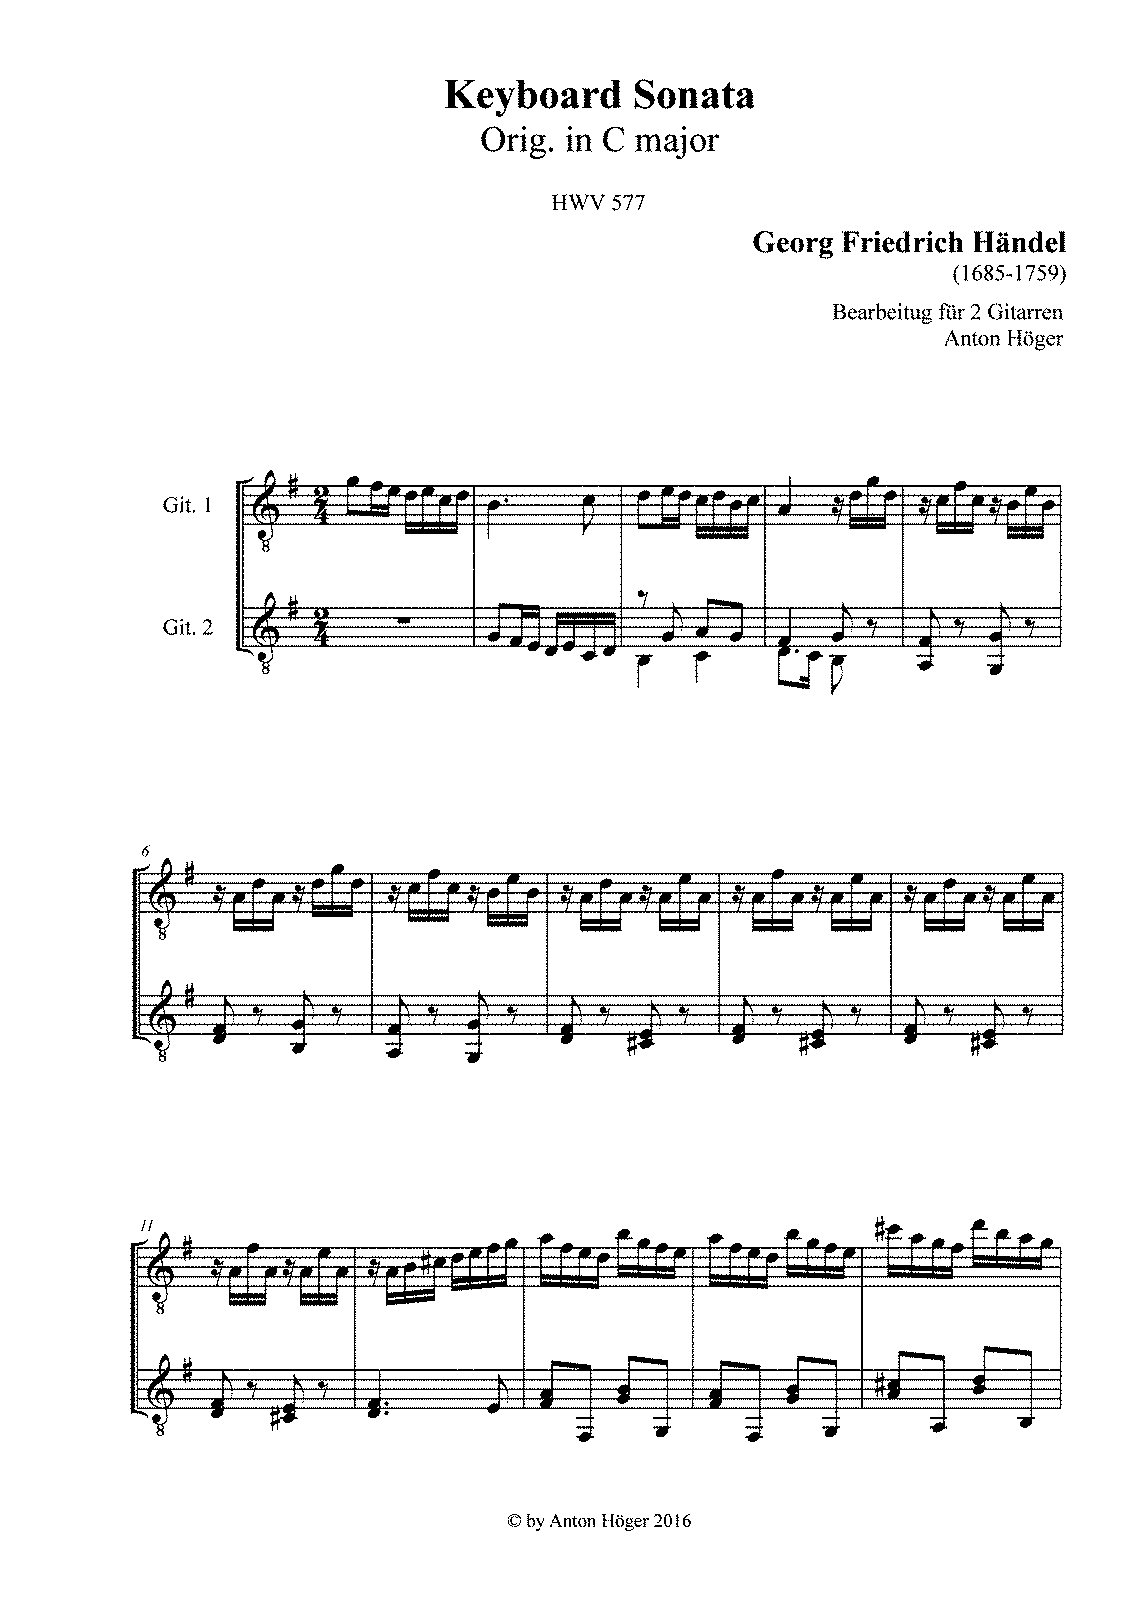 PMLP429901-Händel, Georg Friedrich - Keyboard Sonata in C major, HWV 577-2Git.pdf